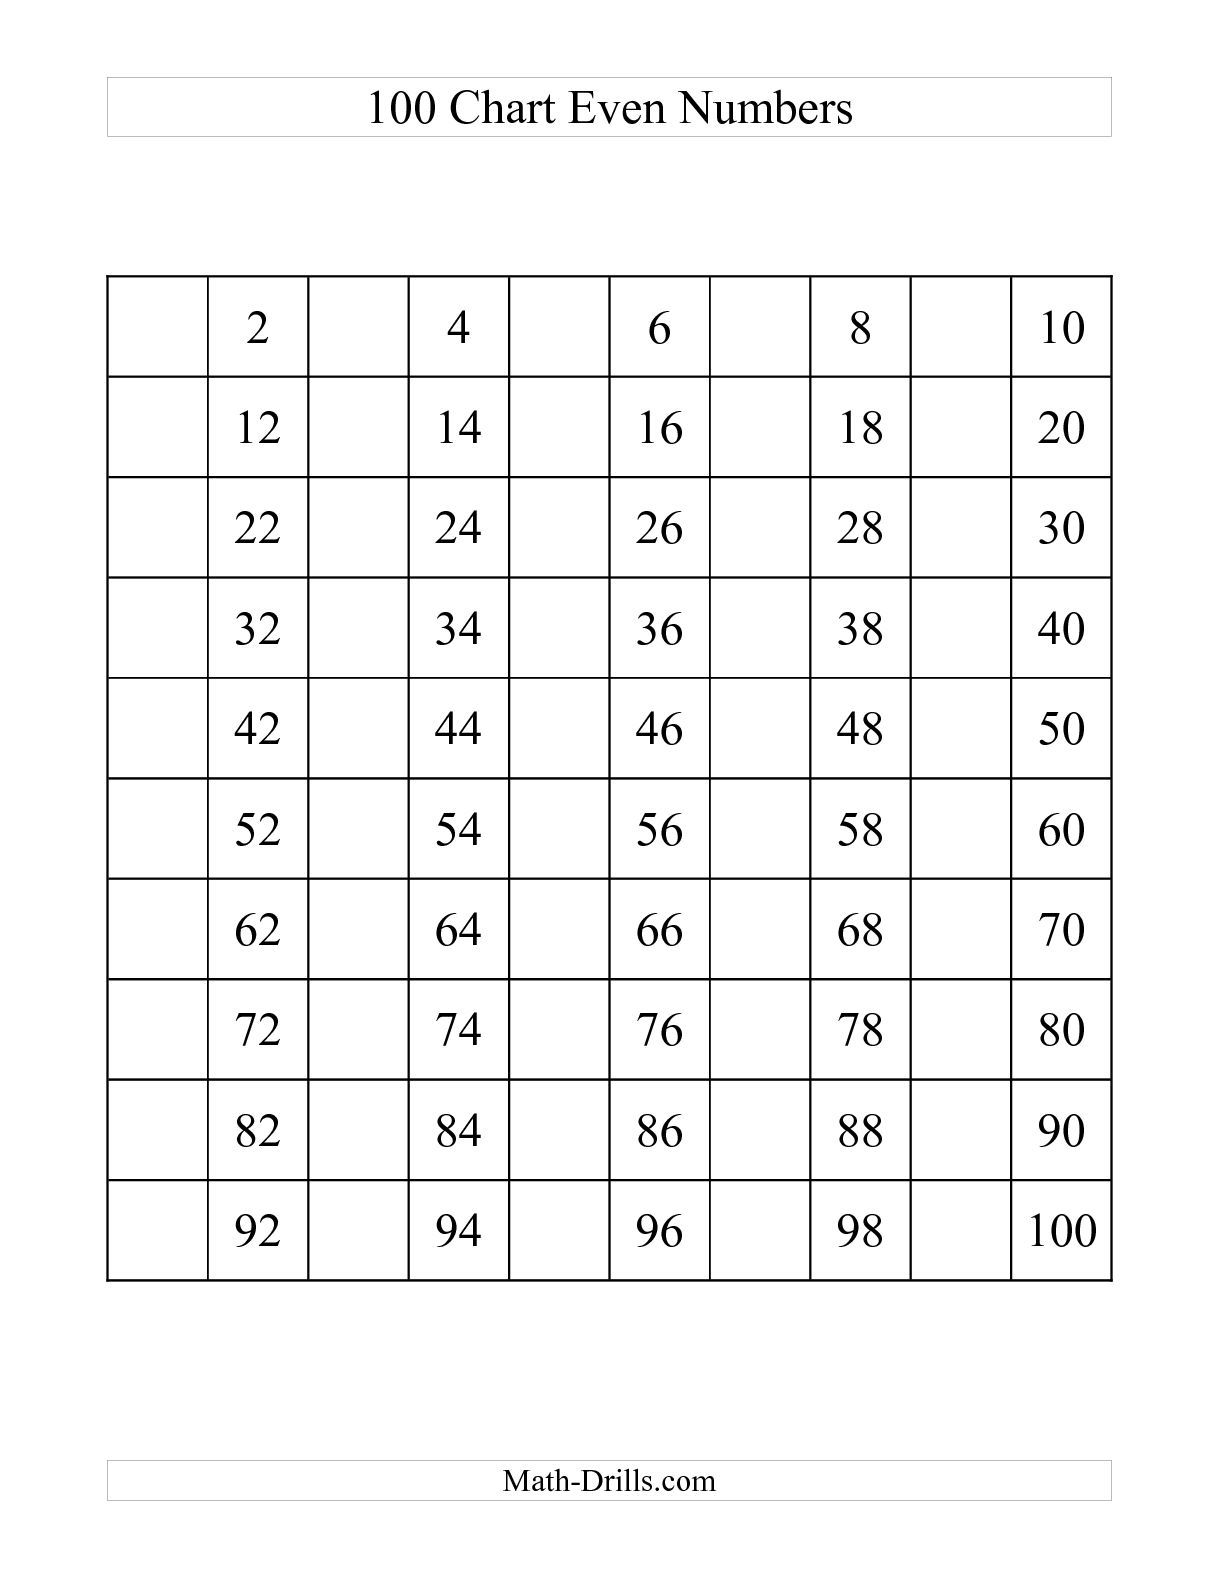 The One Hundred Chart With Even Numbers A